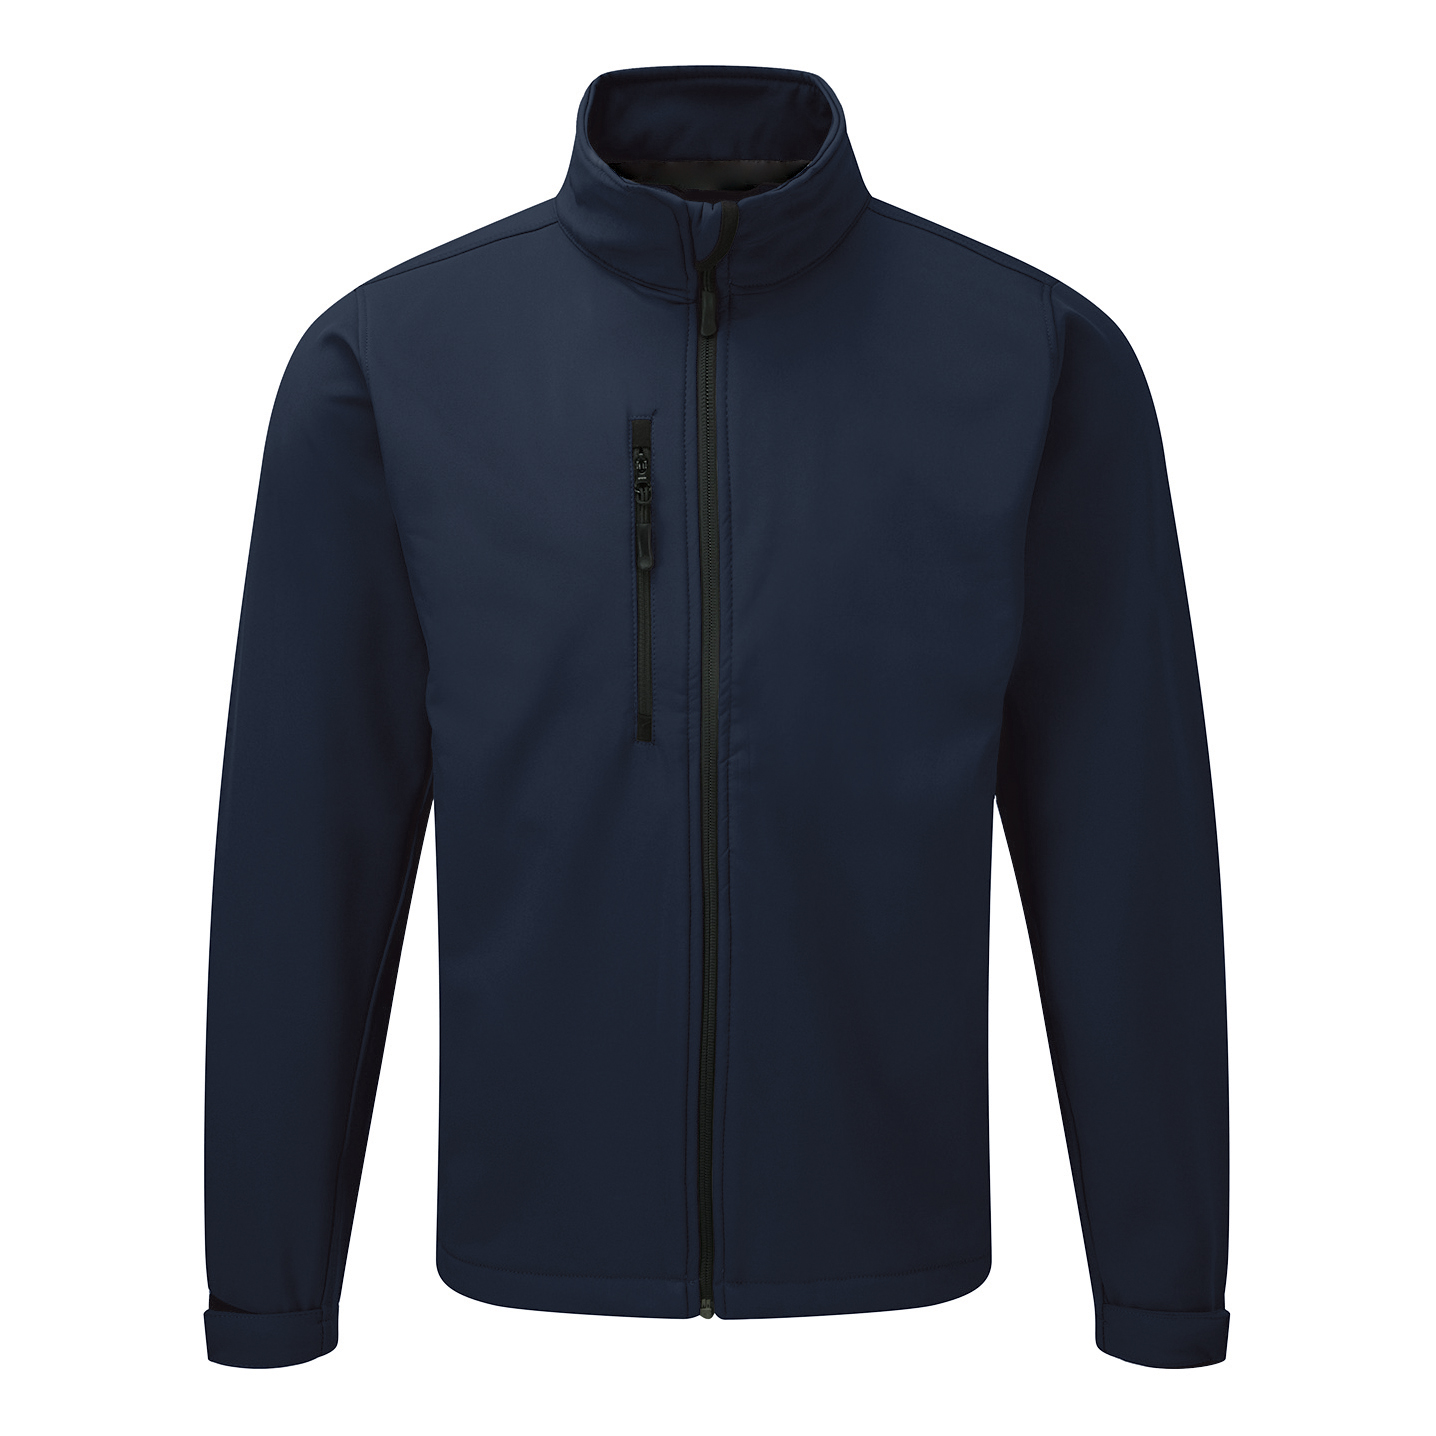 Business Soft Shell Water Resistant Breathable Jacket 320gsm Size 2XL Navy